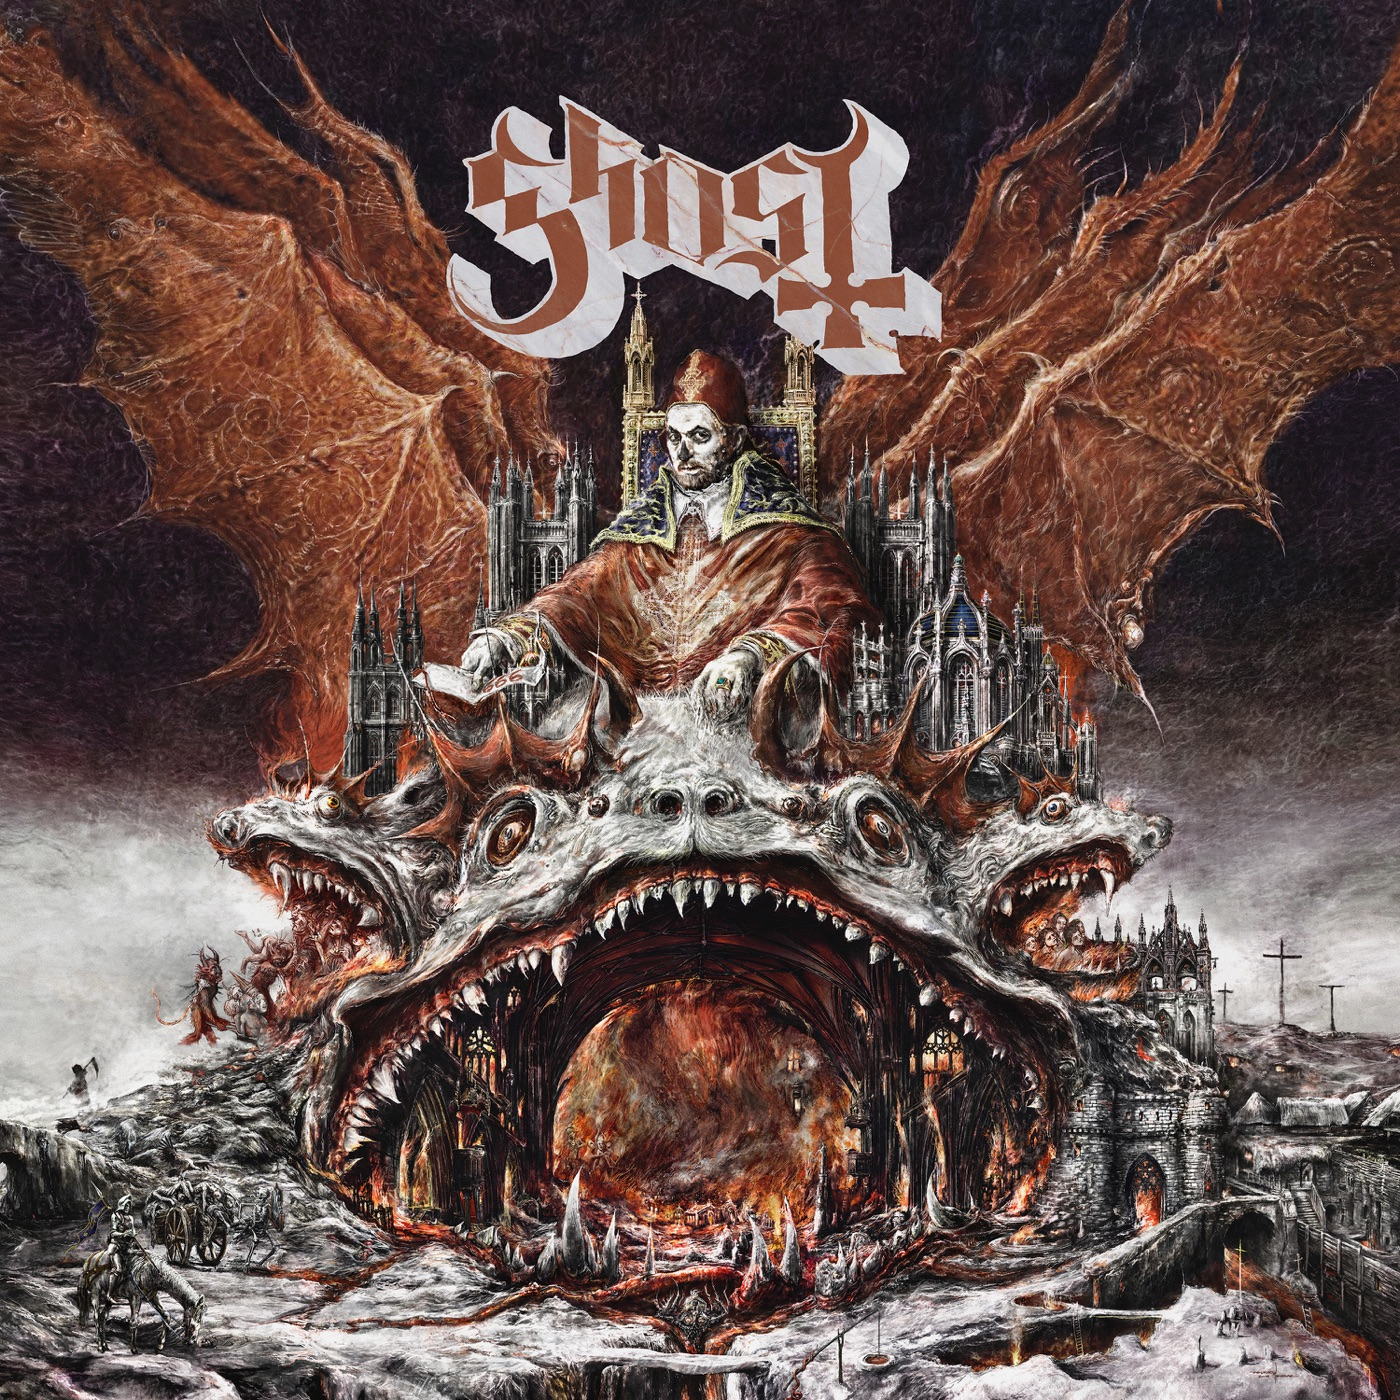 Ghost - Prequelle (Deluxe) (2018)